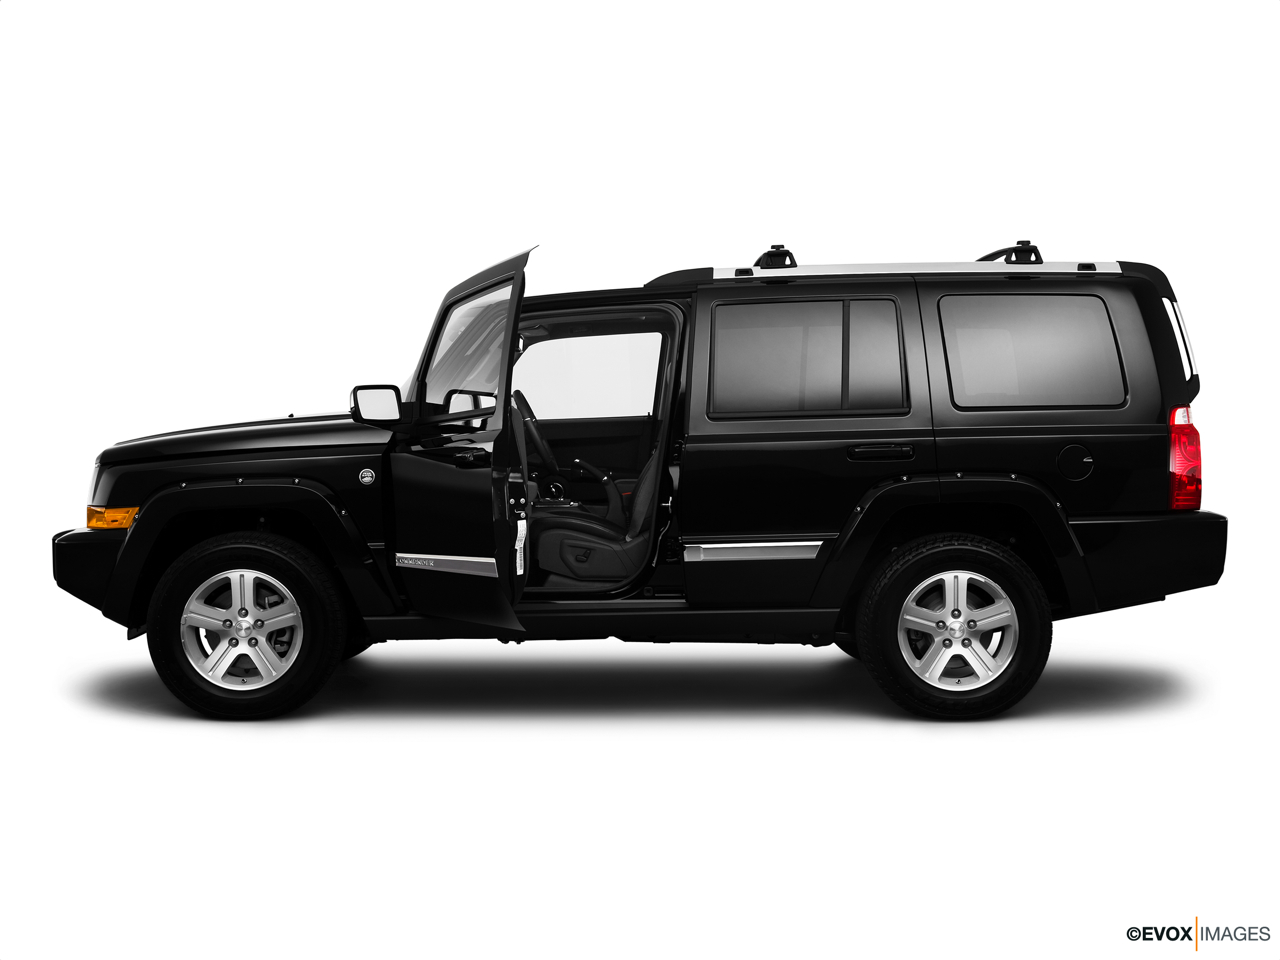 2010 Jeep Commander Limited Driver's side profile with drivers side door open.